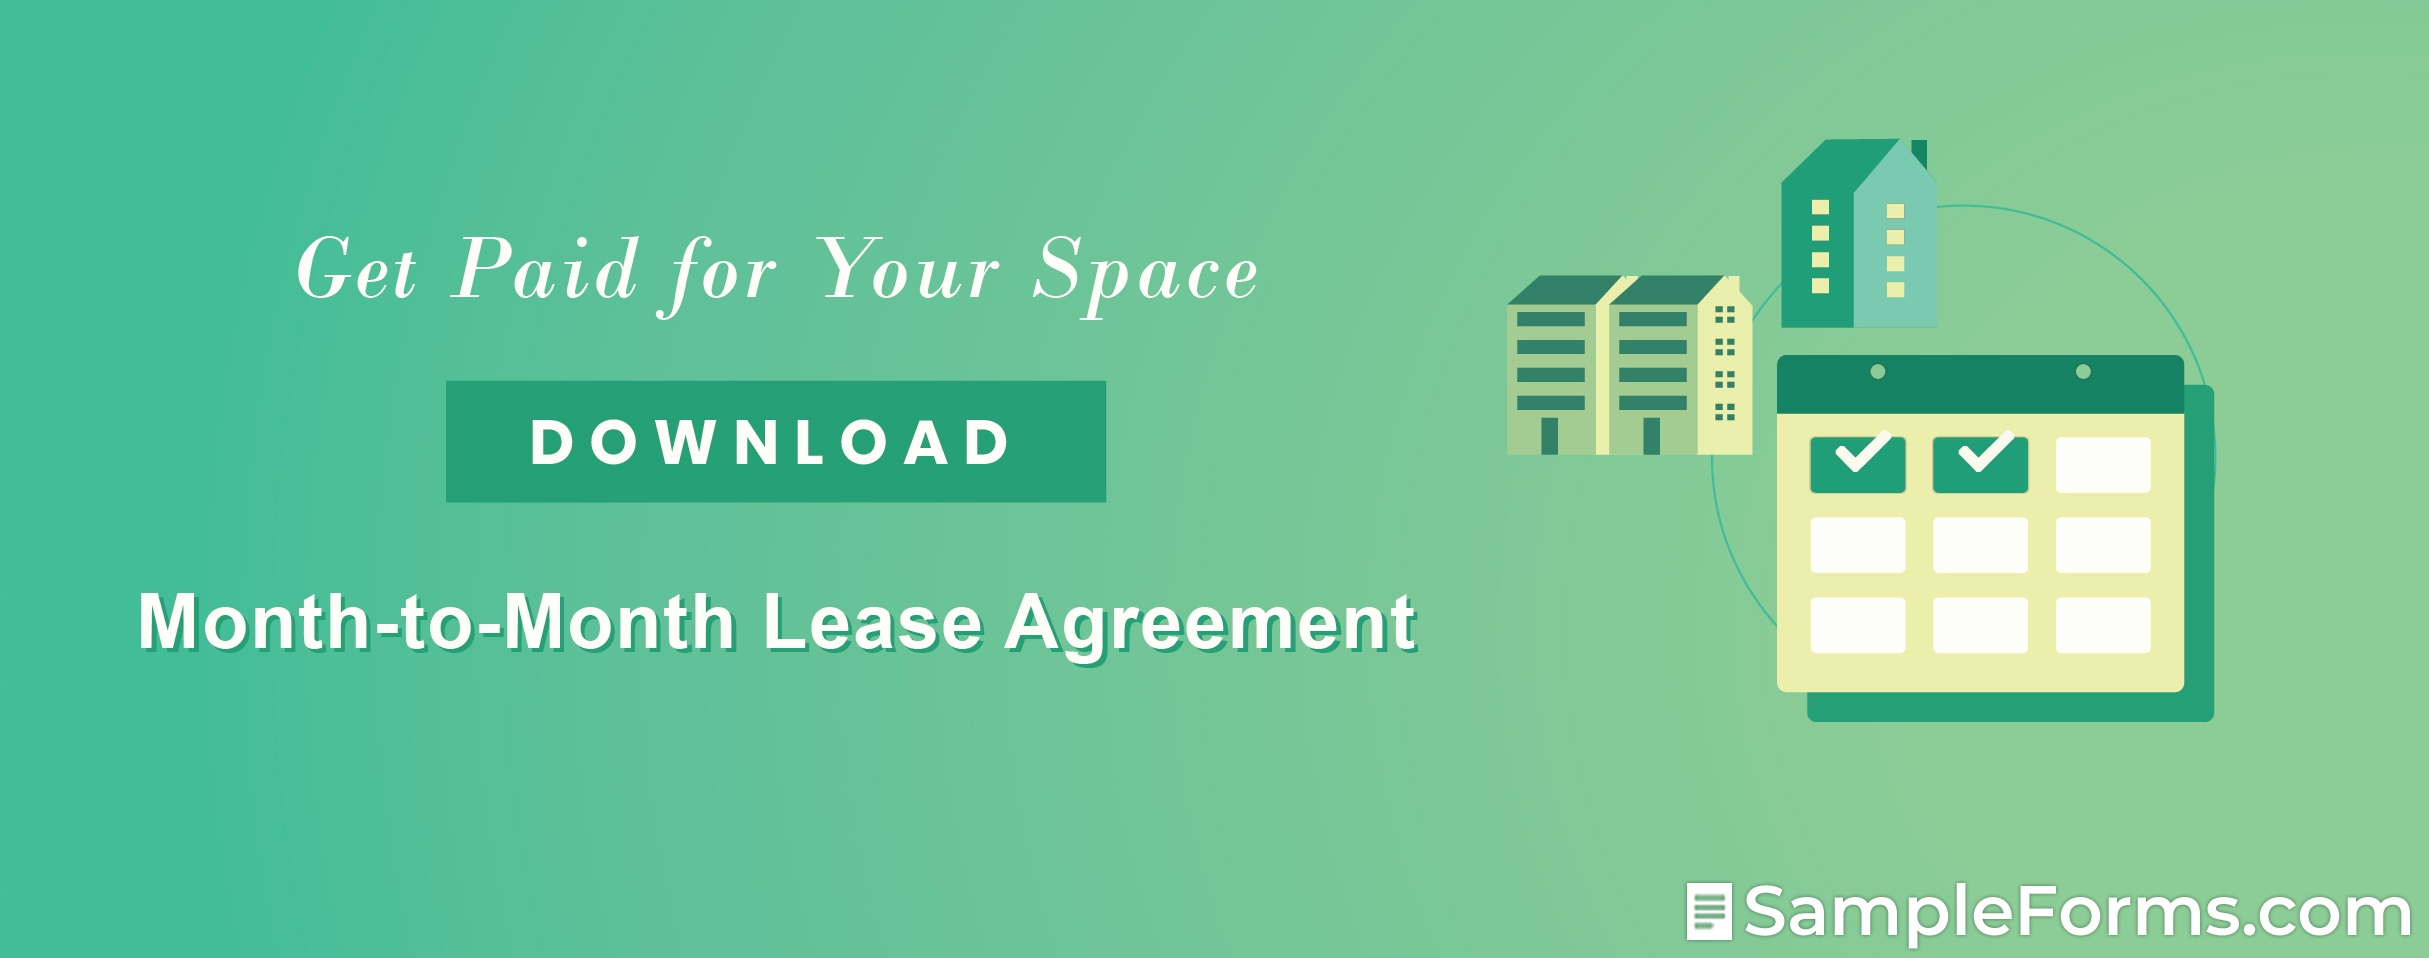 Month to Month Lease Agreement1